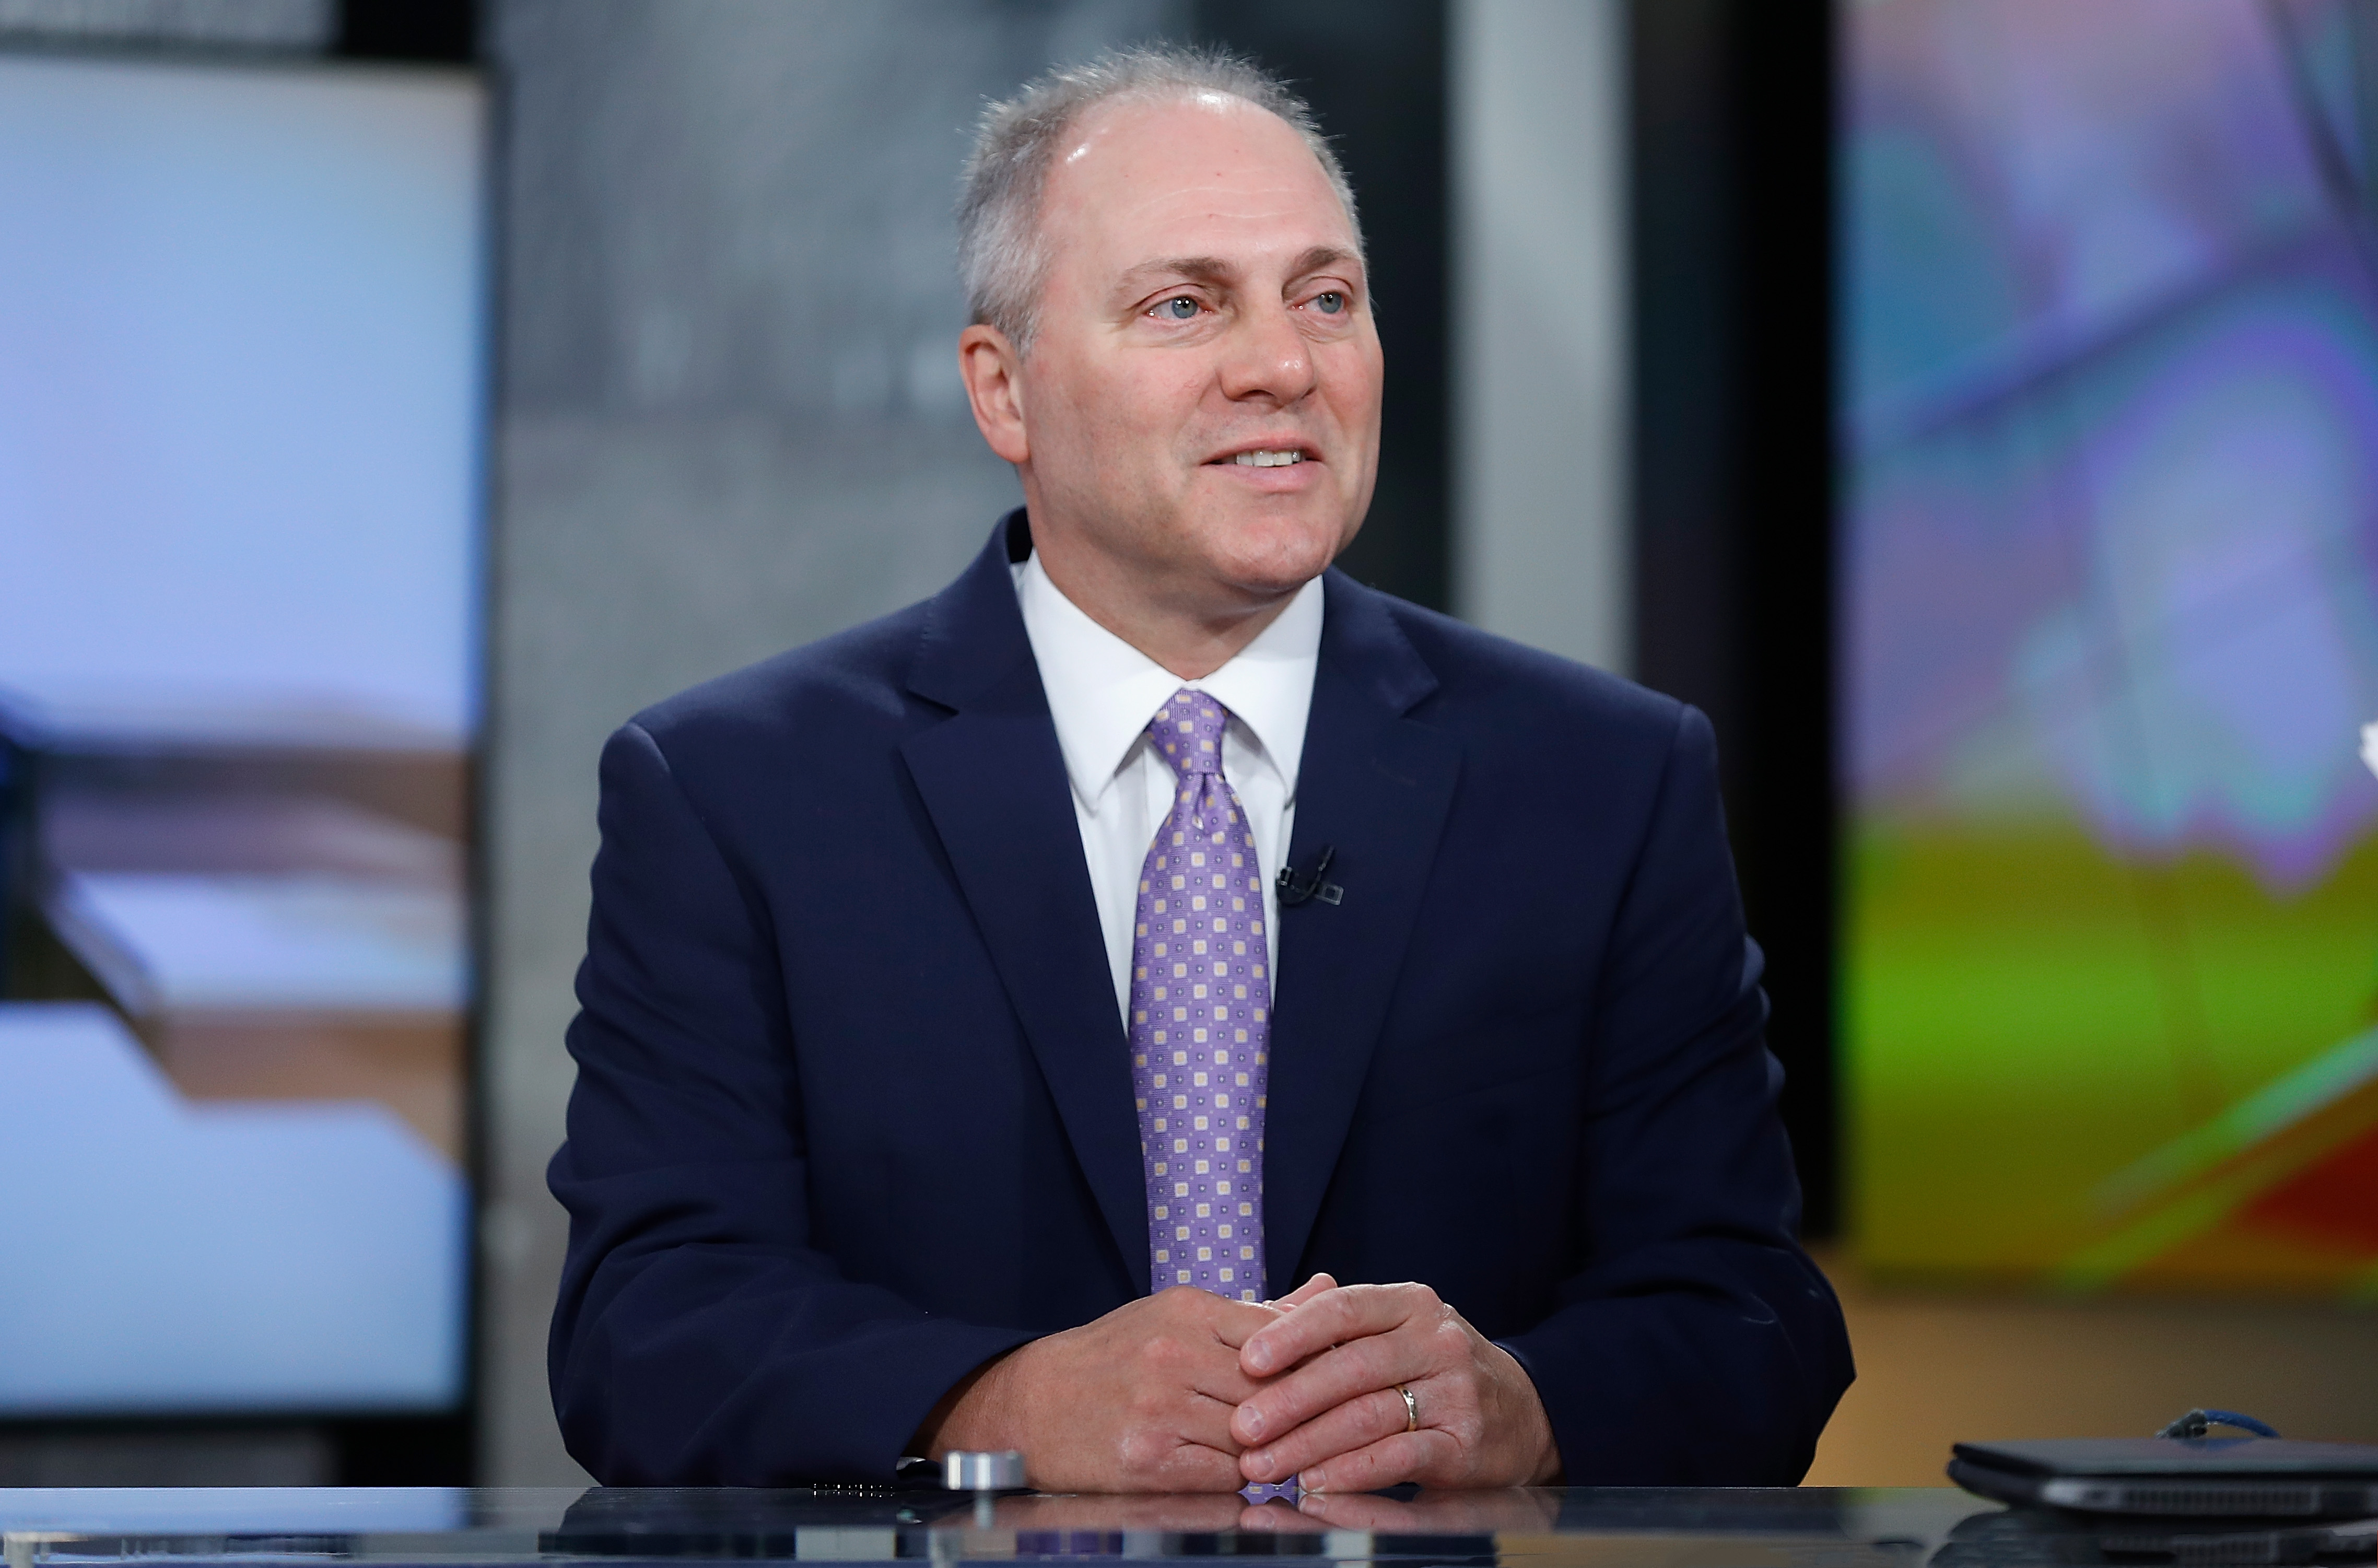 United States House of Representatives Majority Whip and U.S. Rep. Steve Scalise visits  Mornings With Maria  at Fox Business Network Studios on June 5, 2018 in New York City.